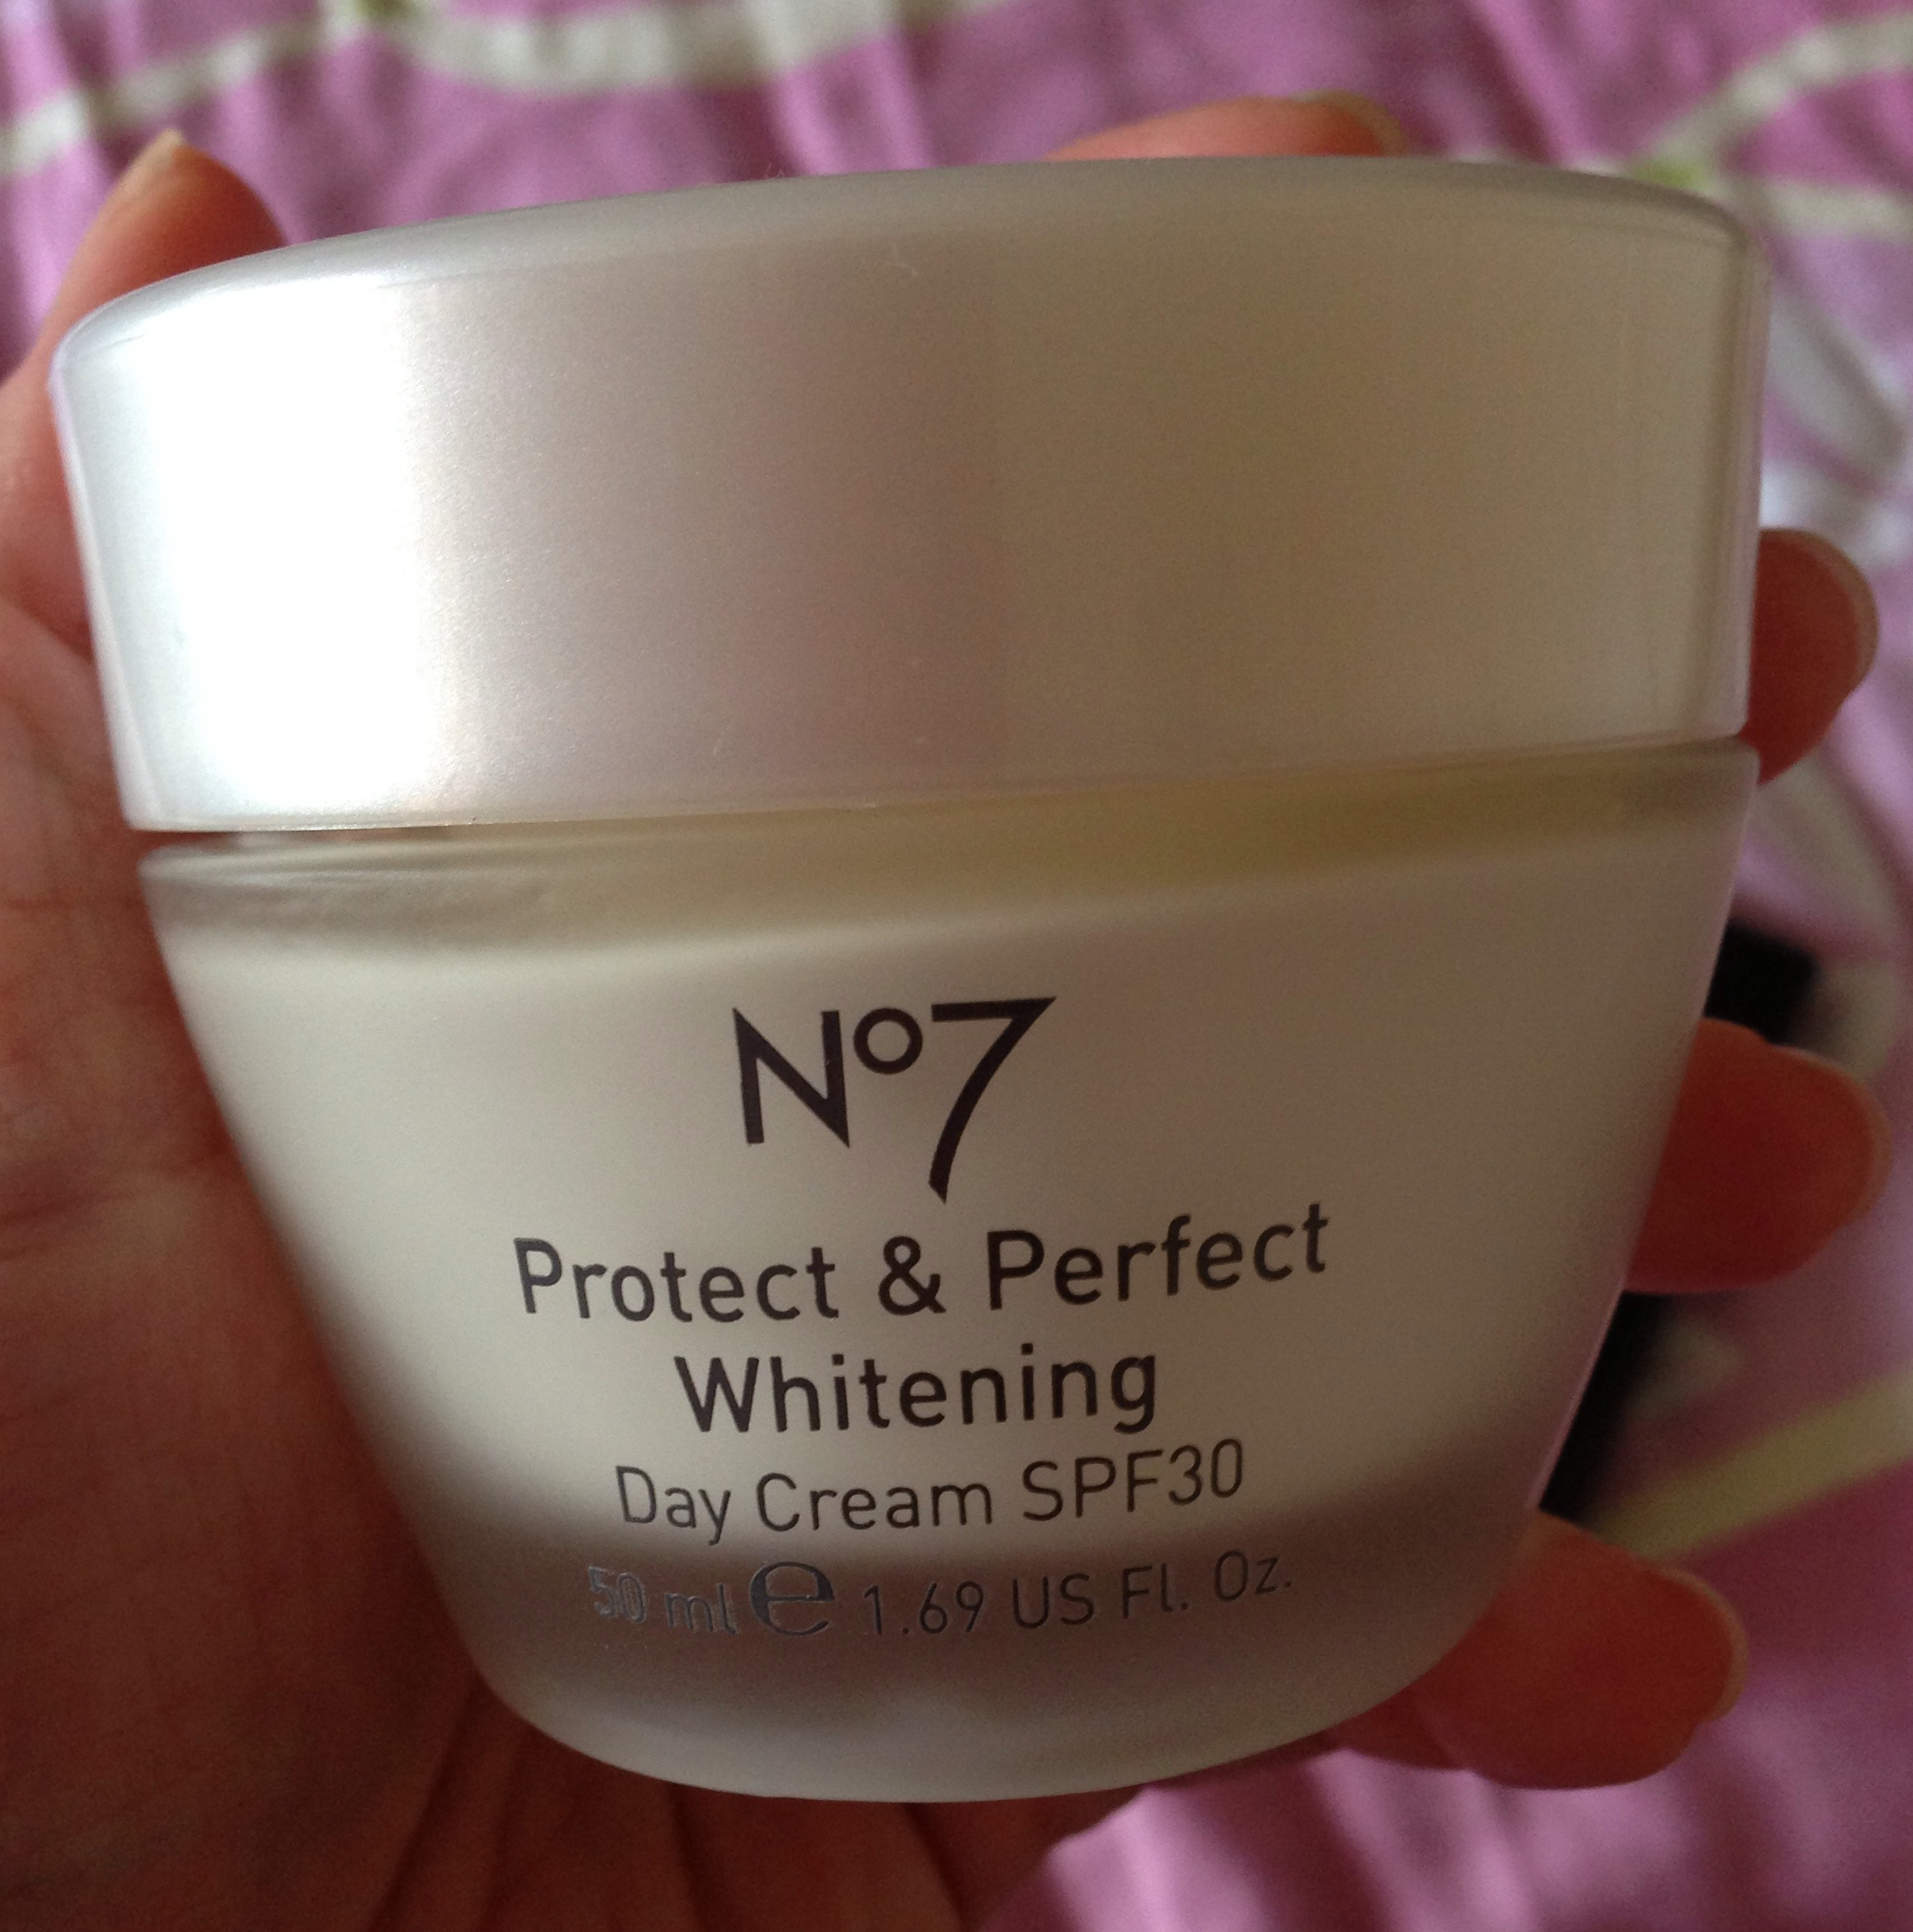 No7 Protect & Perfect Whitening Day Cream SPF 30 | Make Up My Mind ...